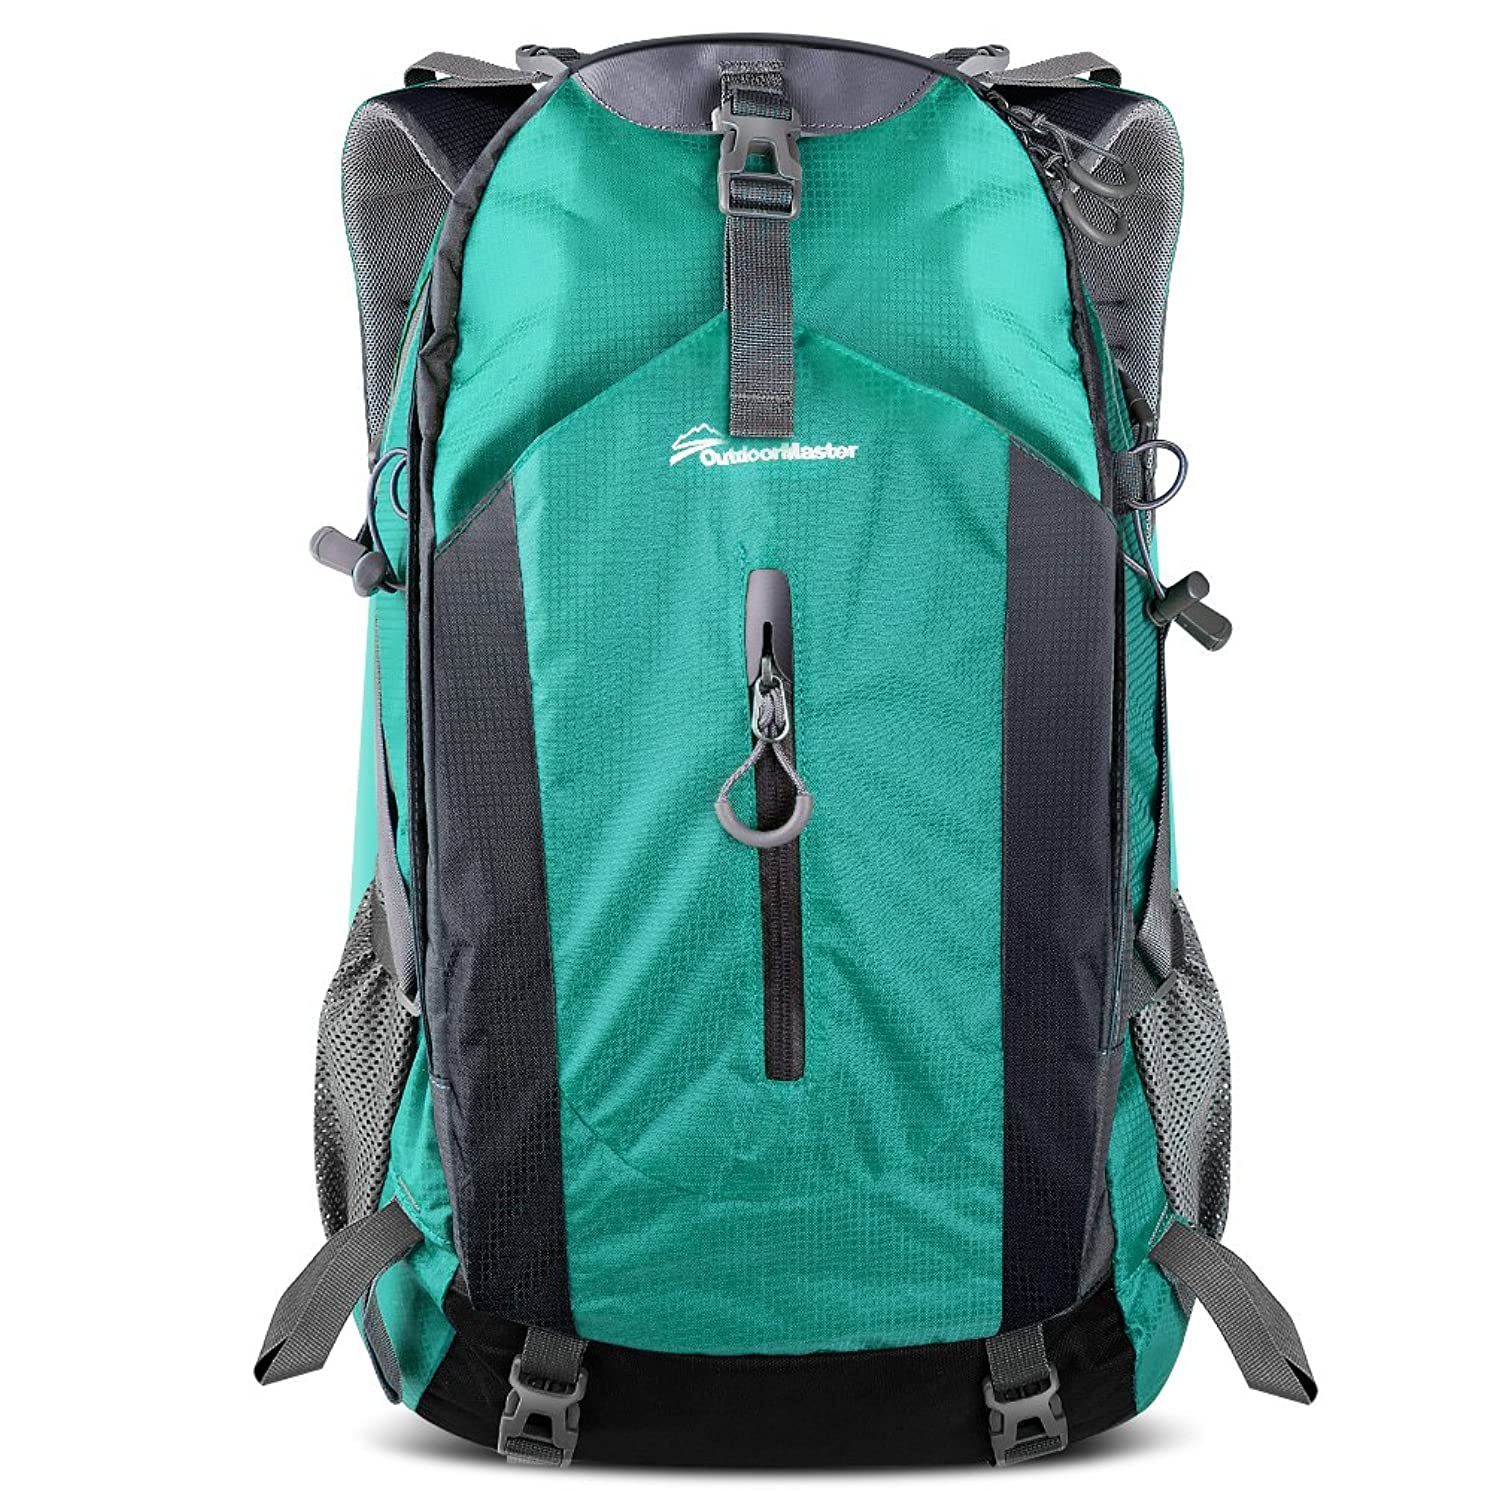 OutdoorMaster Hiking Backpack 50L - Hiking & Travel Carry-On Backpack w/Waterproof Rain Cover - for Hiking, Traveling & Camping